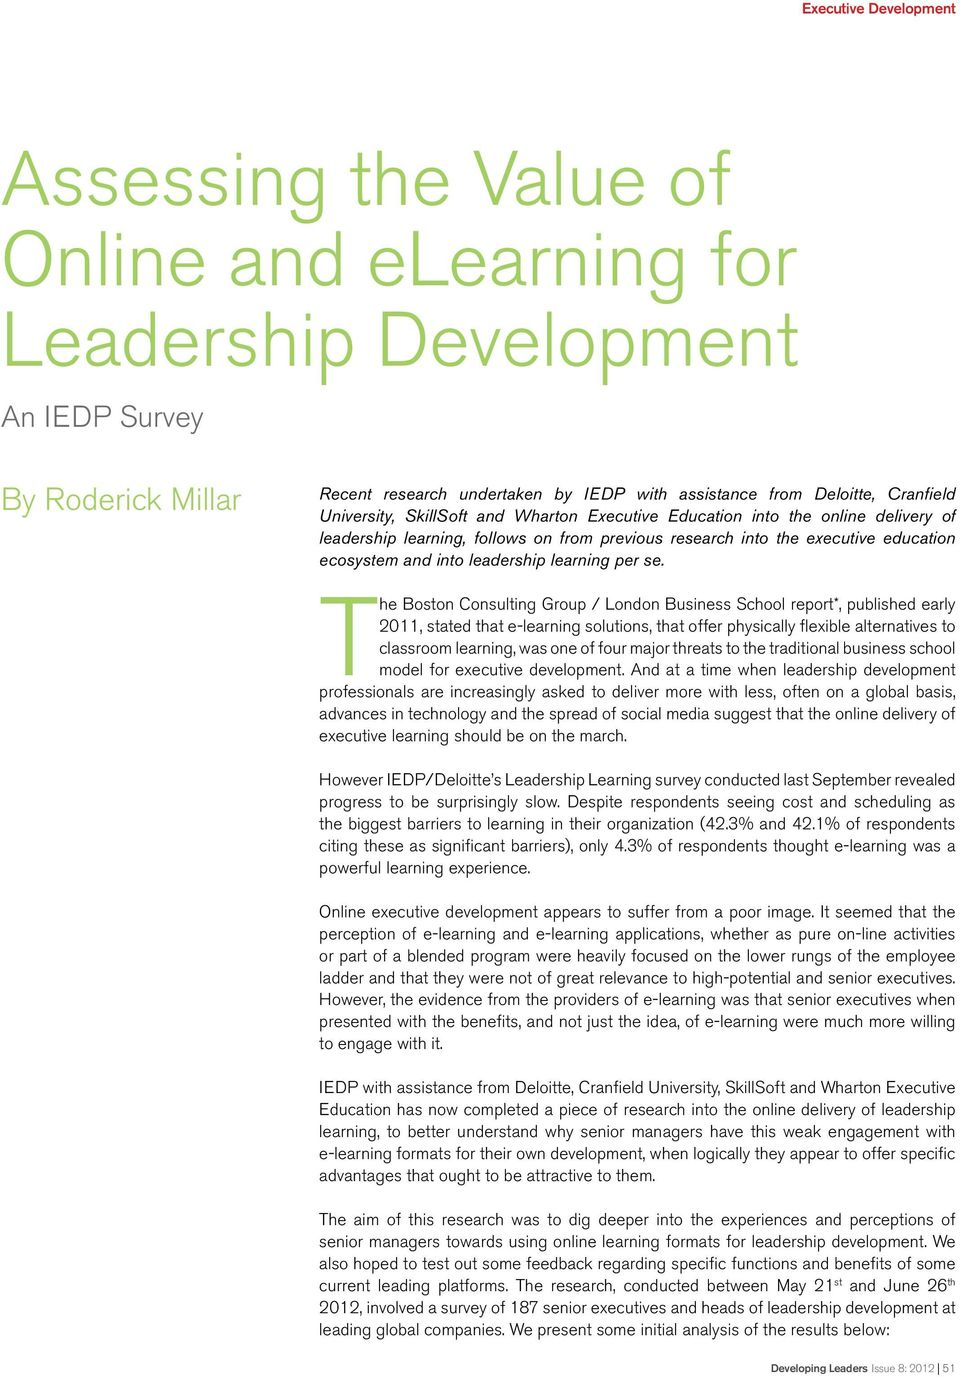 The Boston Consulting Group / London Business School report*, published early 2011, stated that e-learning solutions, that offer physically flexible alternatives to classroom learning, was one of